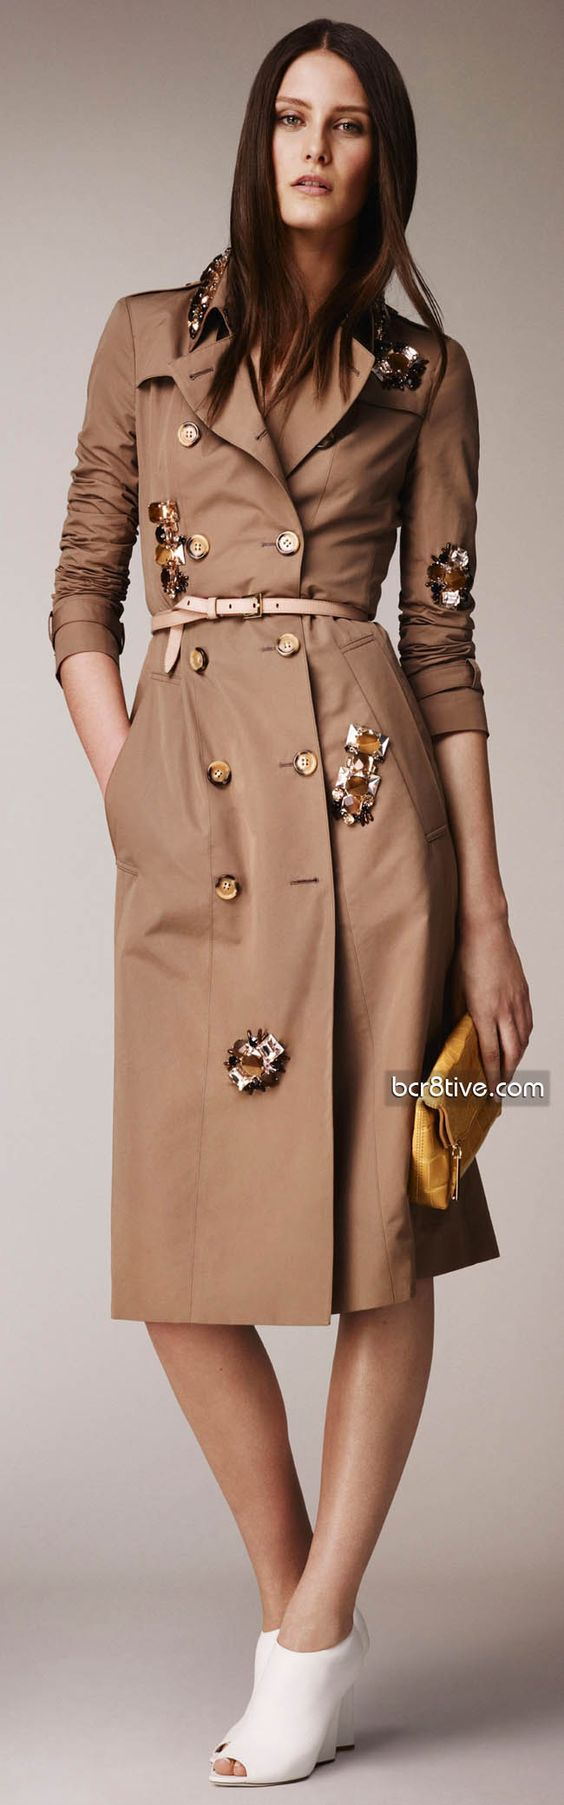 Burberry Prorsum Pre Spring 2014 Collection | The House of Beccaria